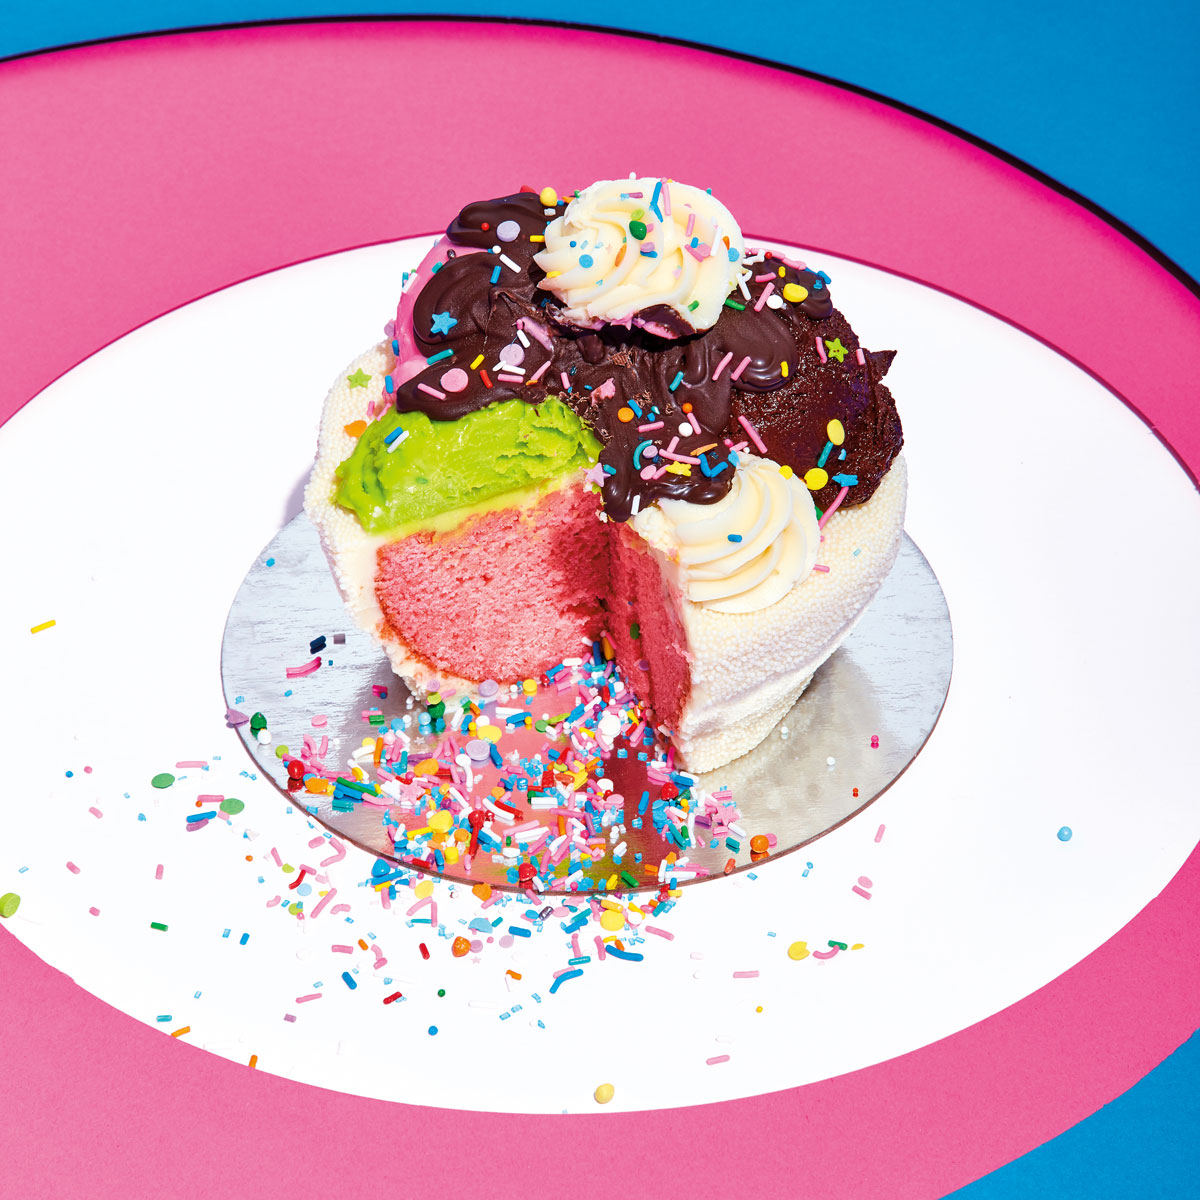 ice cream cake from the Power of Sprinkles cookbook